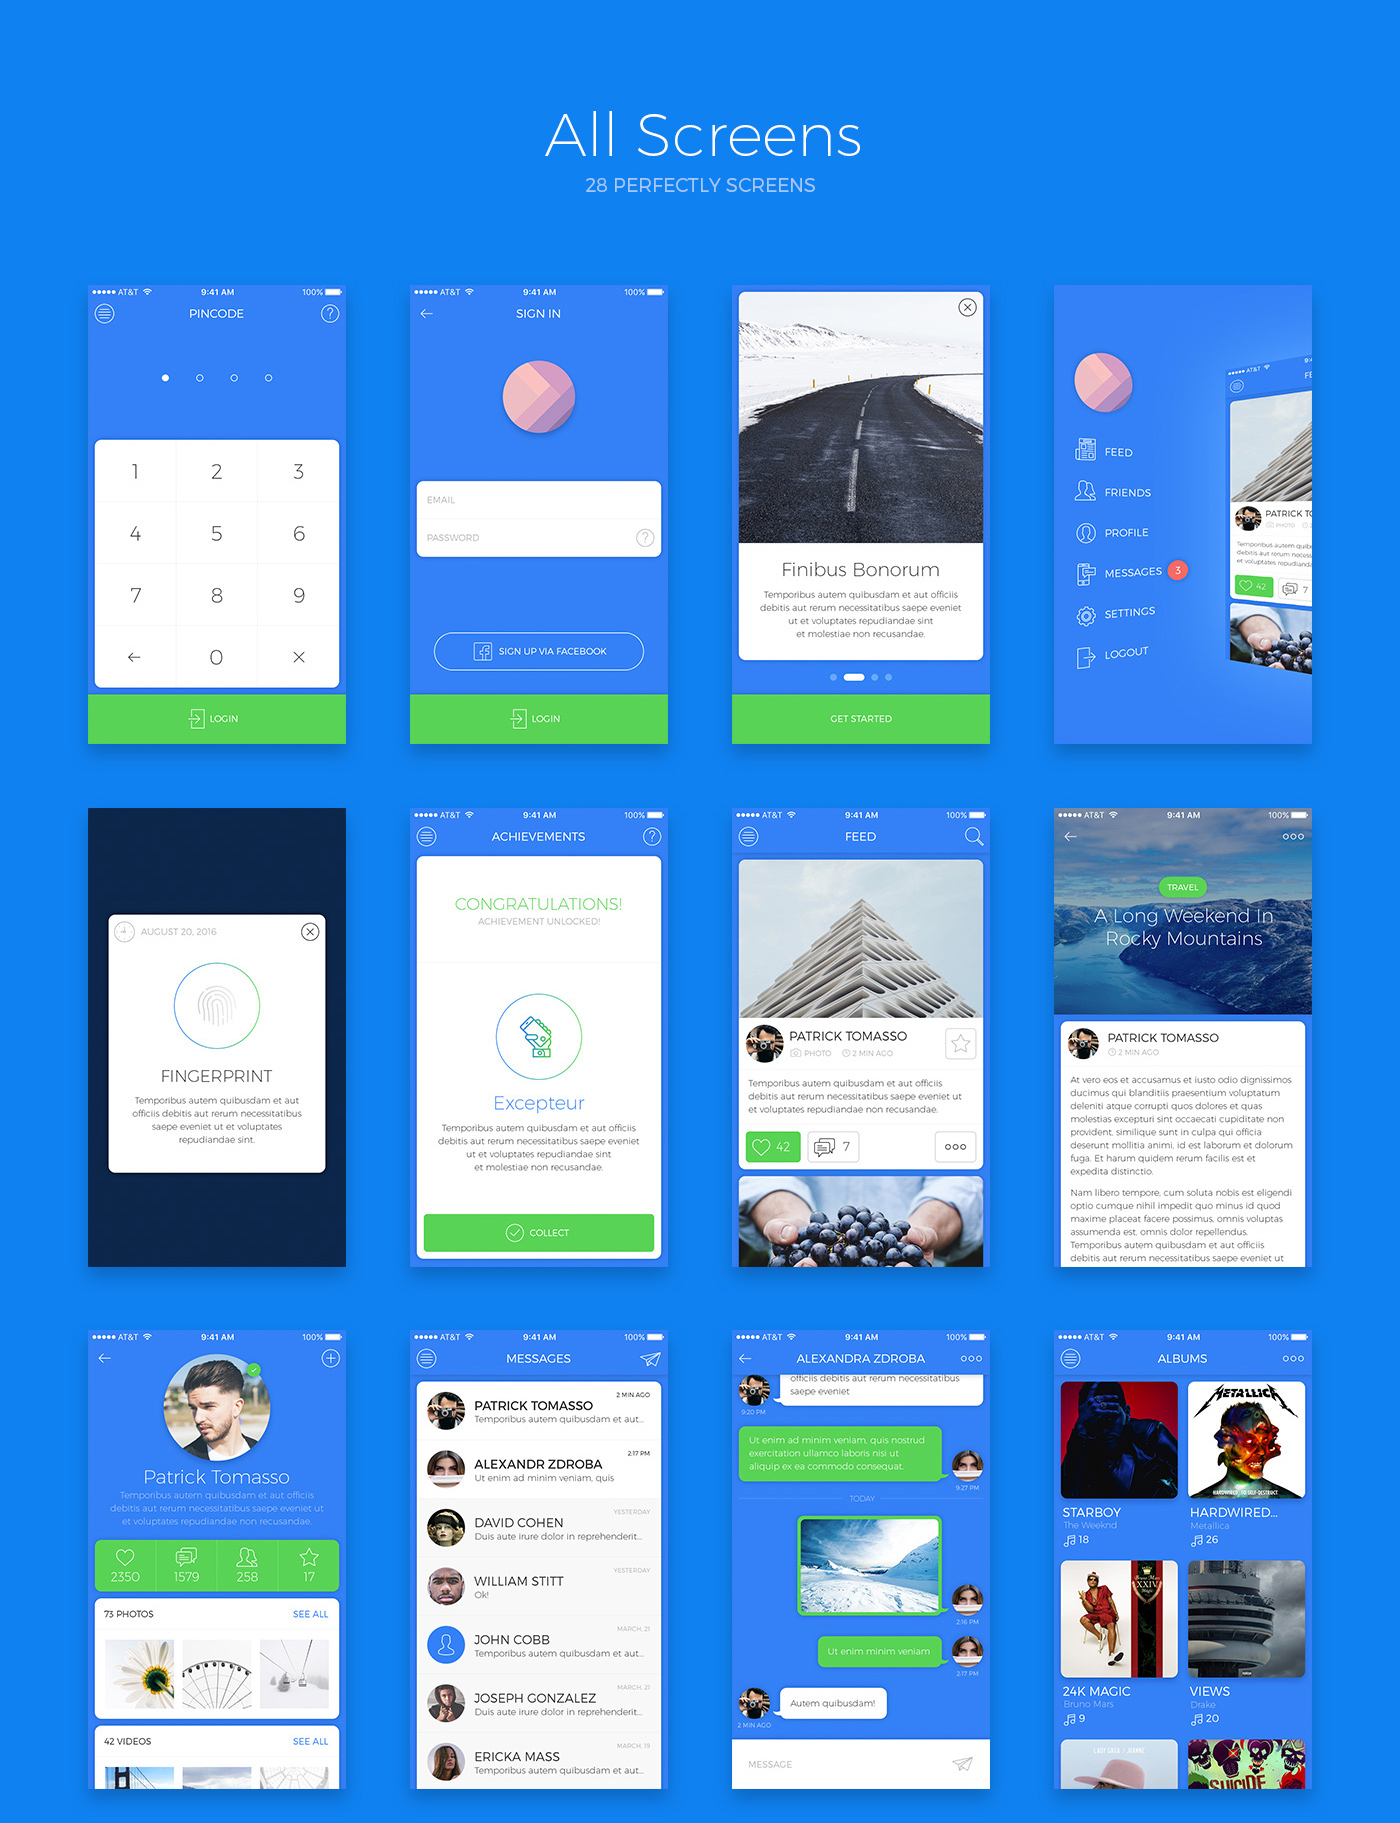 7 Social screens, 7 base screens, 7 main screens for iOS Free App